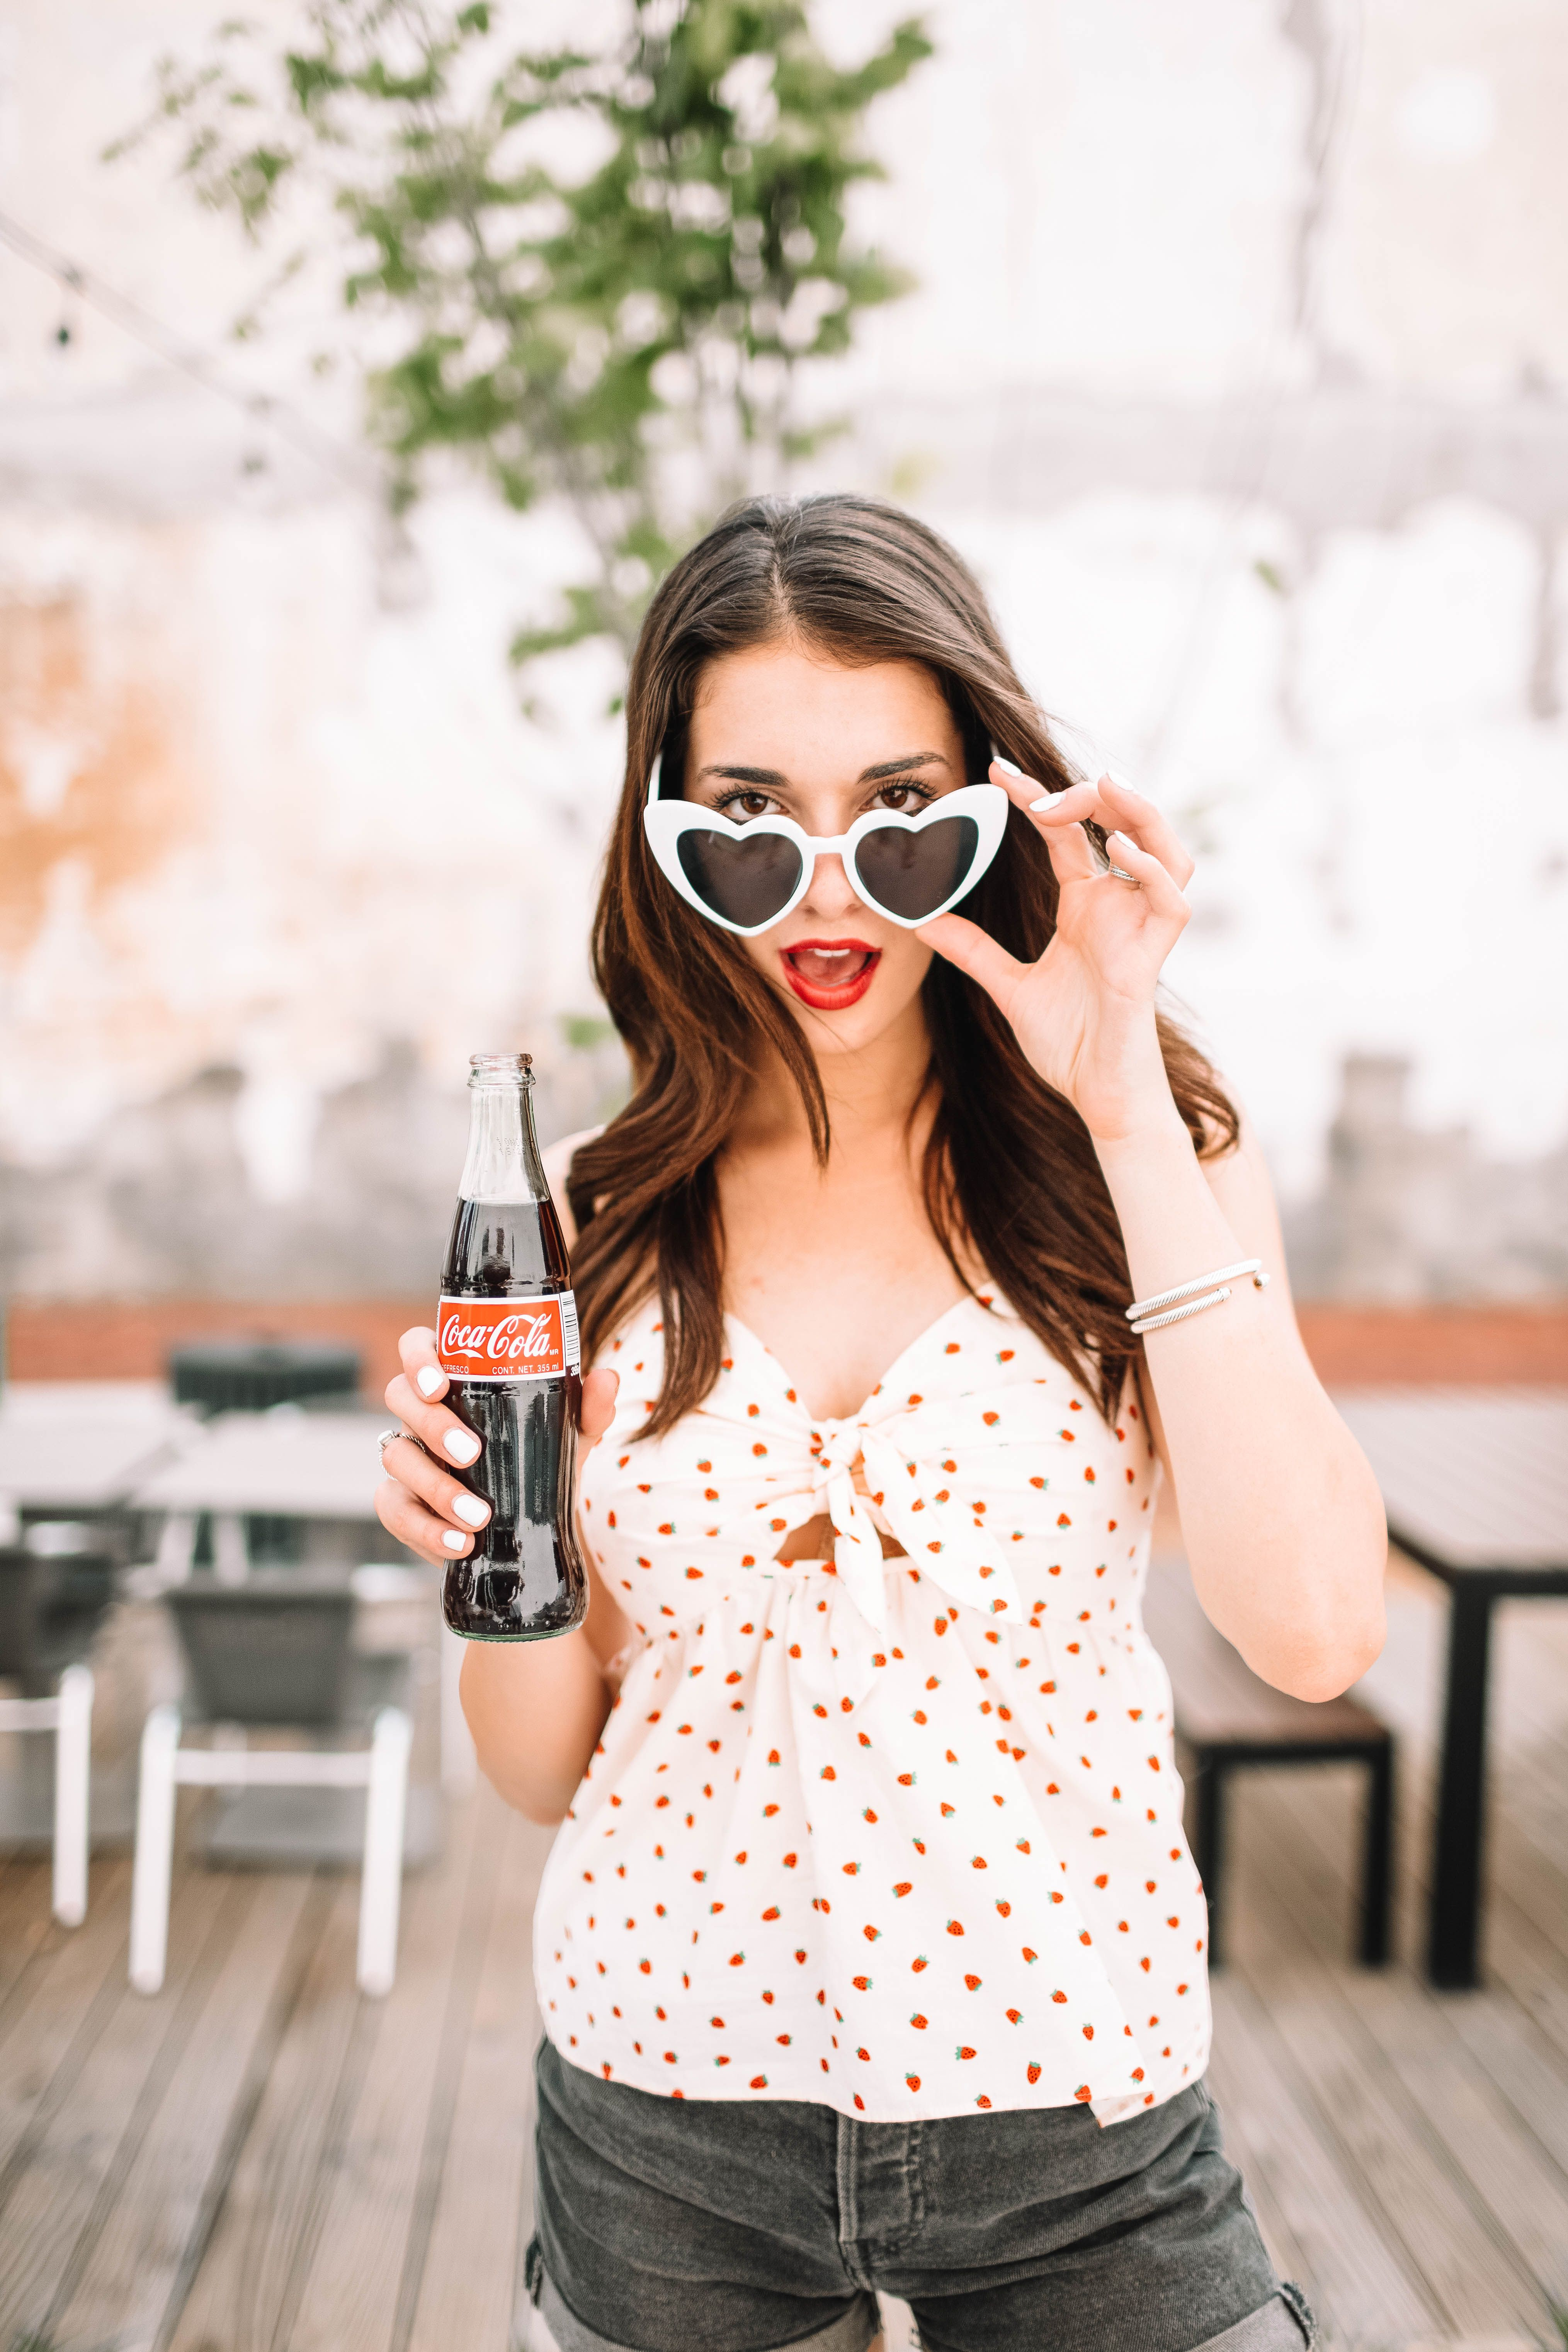 Photo Ideas Coke Fun Photography Summer Style Summer Clothes Madewell Heart Glasses Photosho Summer Photoshoot Summer Fashion Outfits Spring Photoshoot